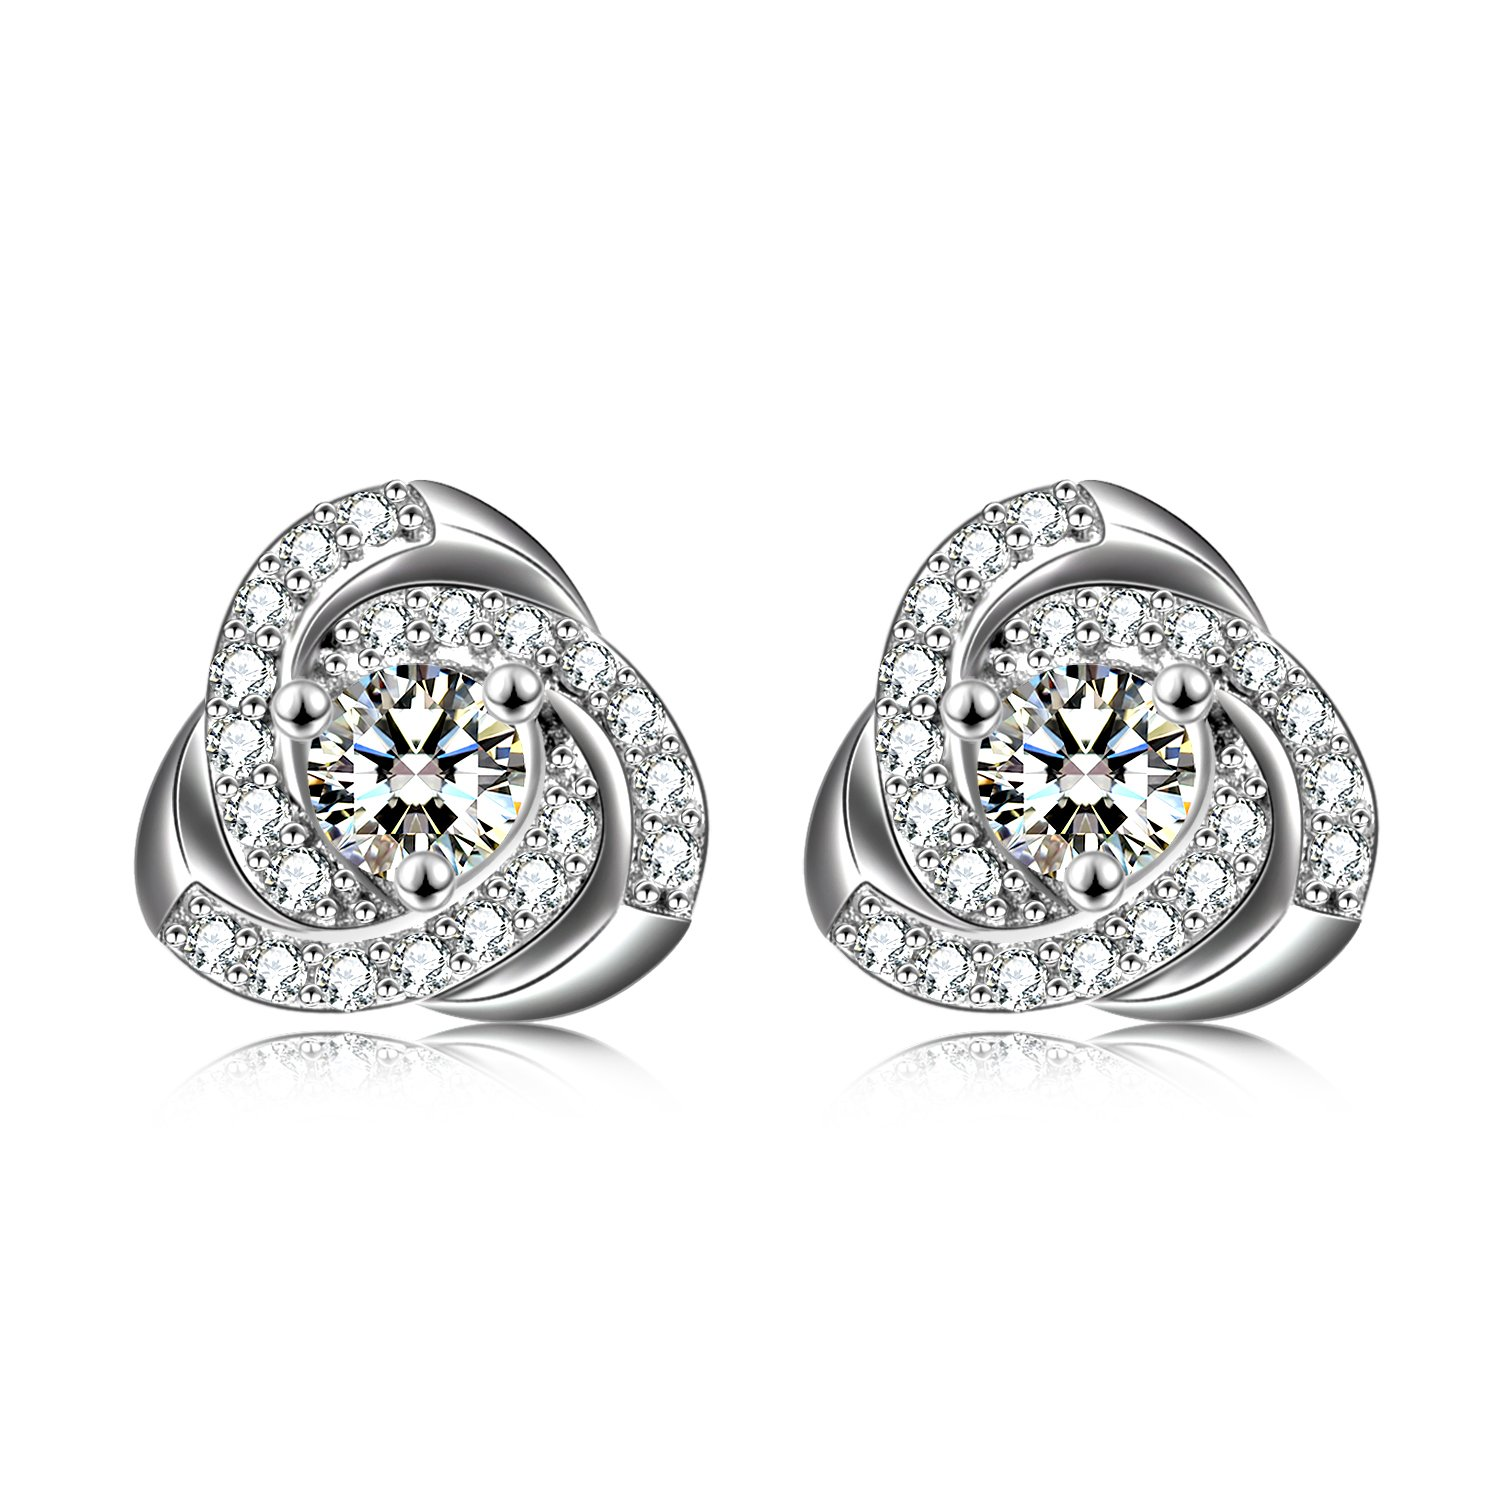 Love Knot Earrings SOULMEET Sterling Silver Cubic Zirconia Stud Earrings for Women